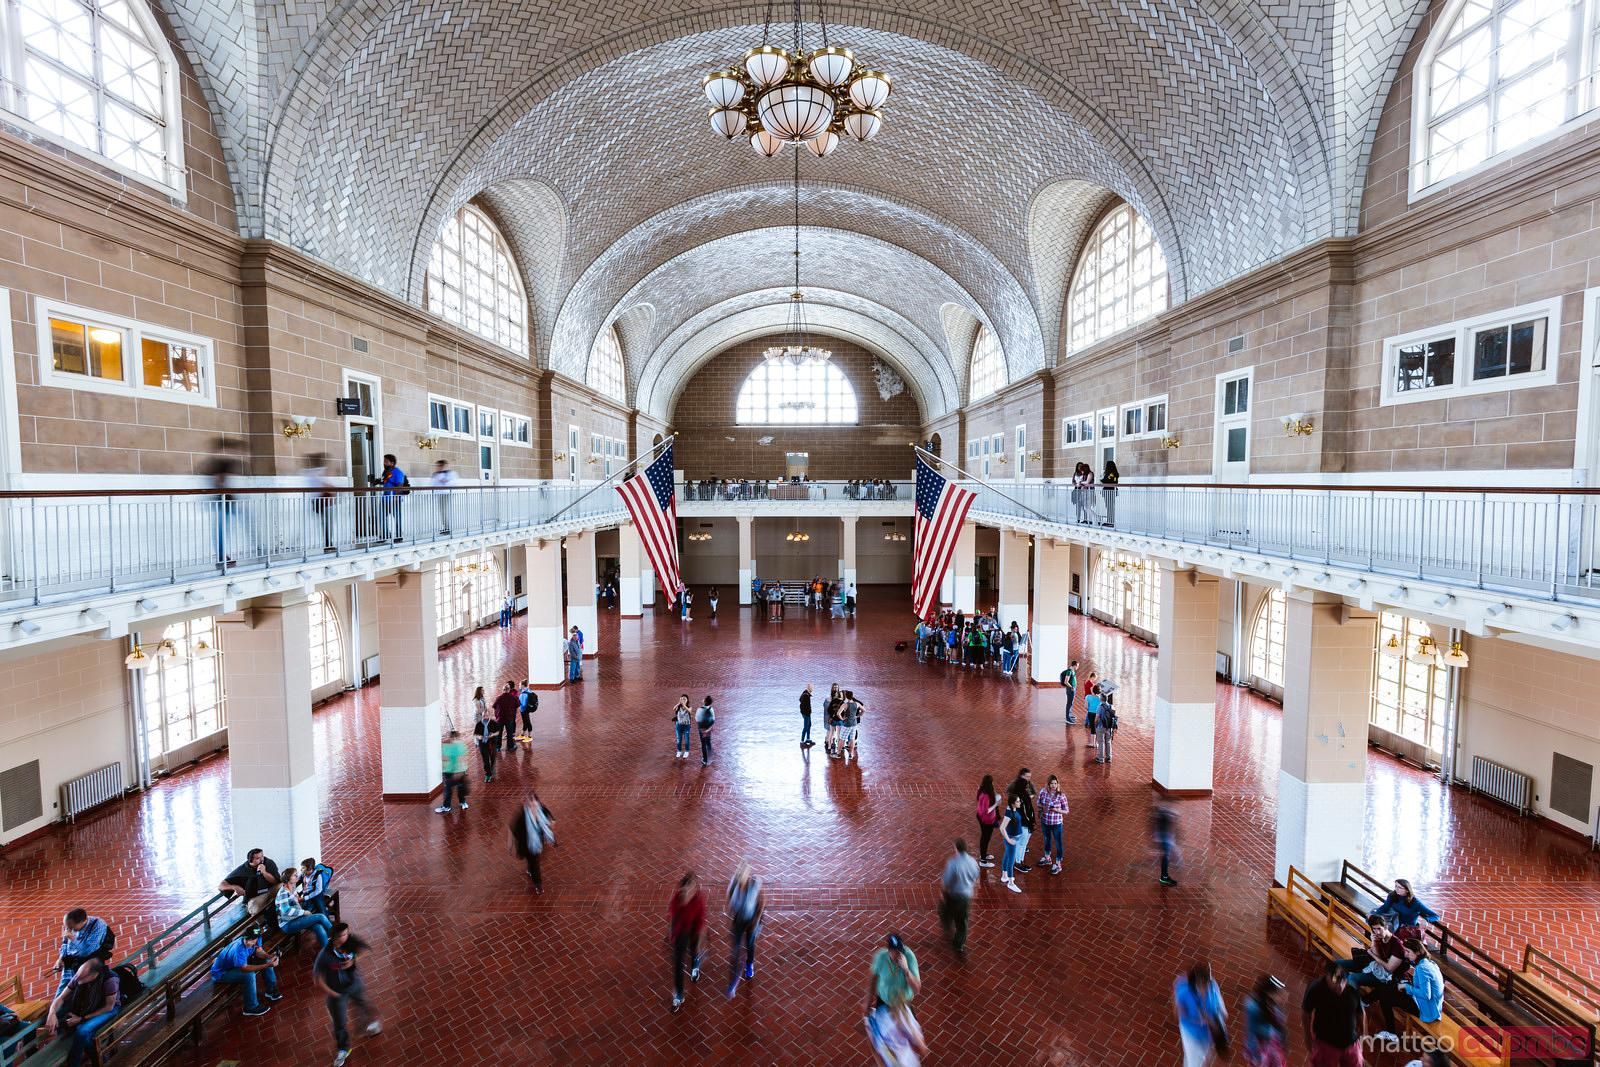 Interior of the Great Hall, Ellis Island, New York city